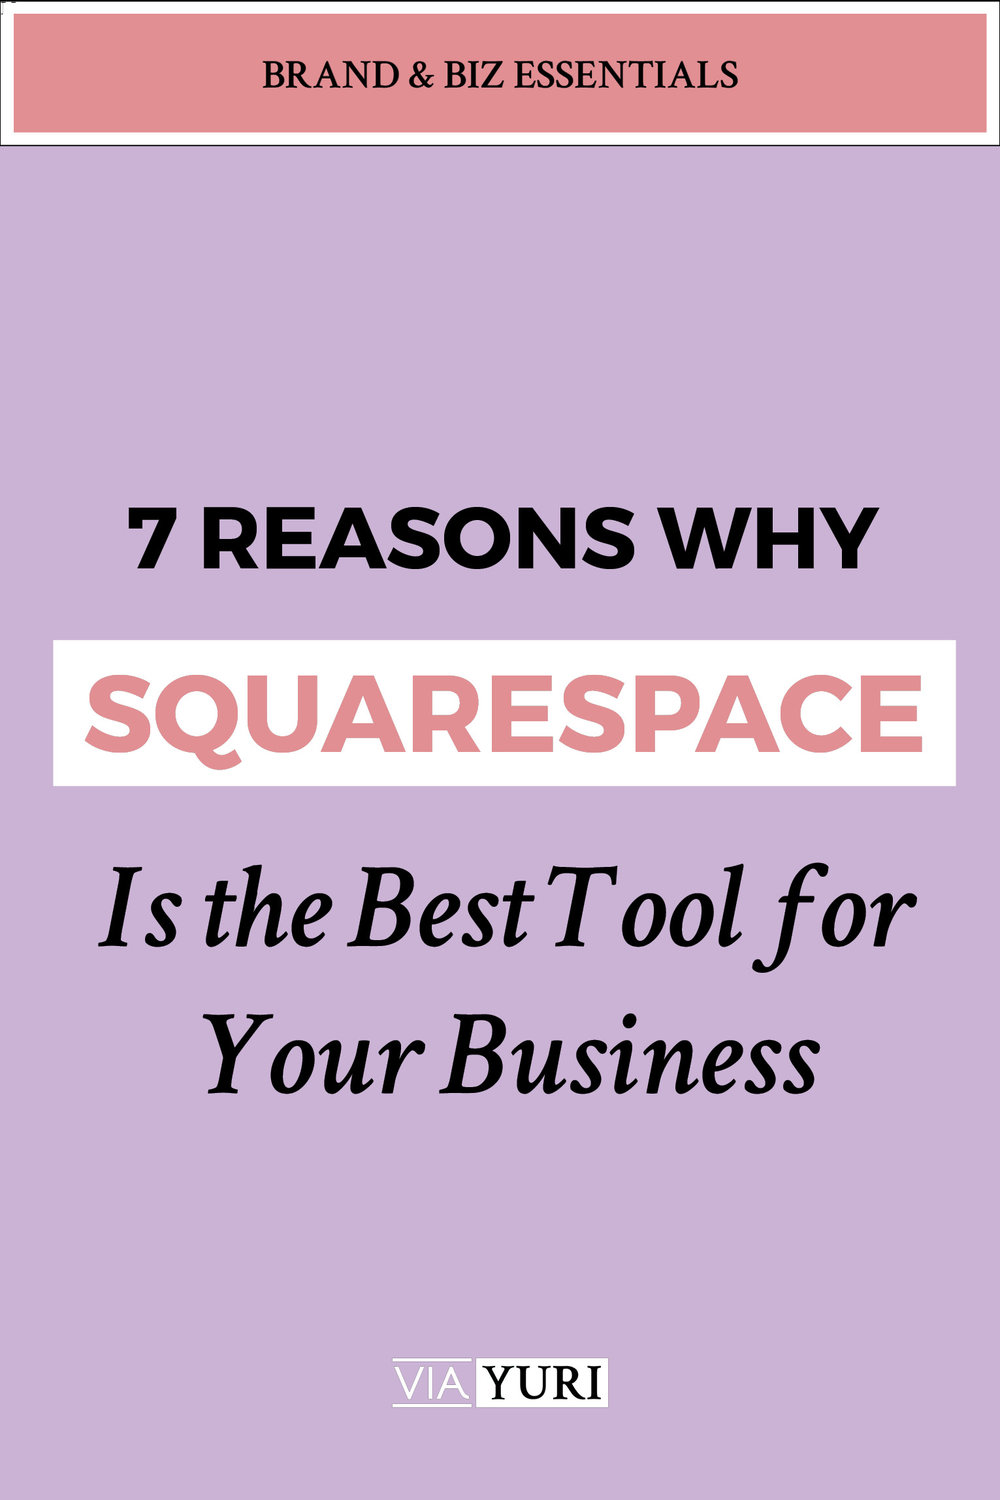 If your website has been top of mind lately, then this post all about the 7 Reasons Squarespace is the Best Tool for Your Business is what you've been waiting to read. Click over to viaYuri.com to learn more.